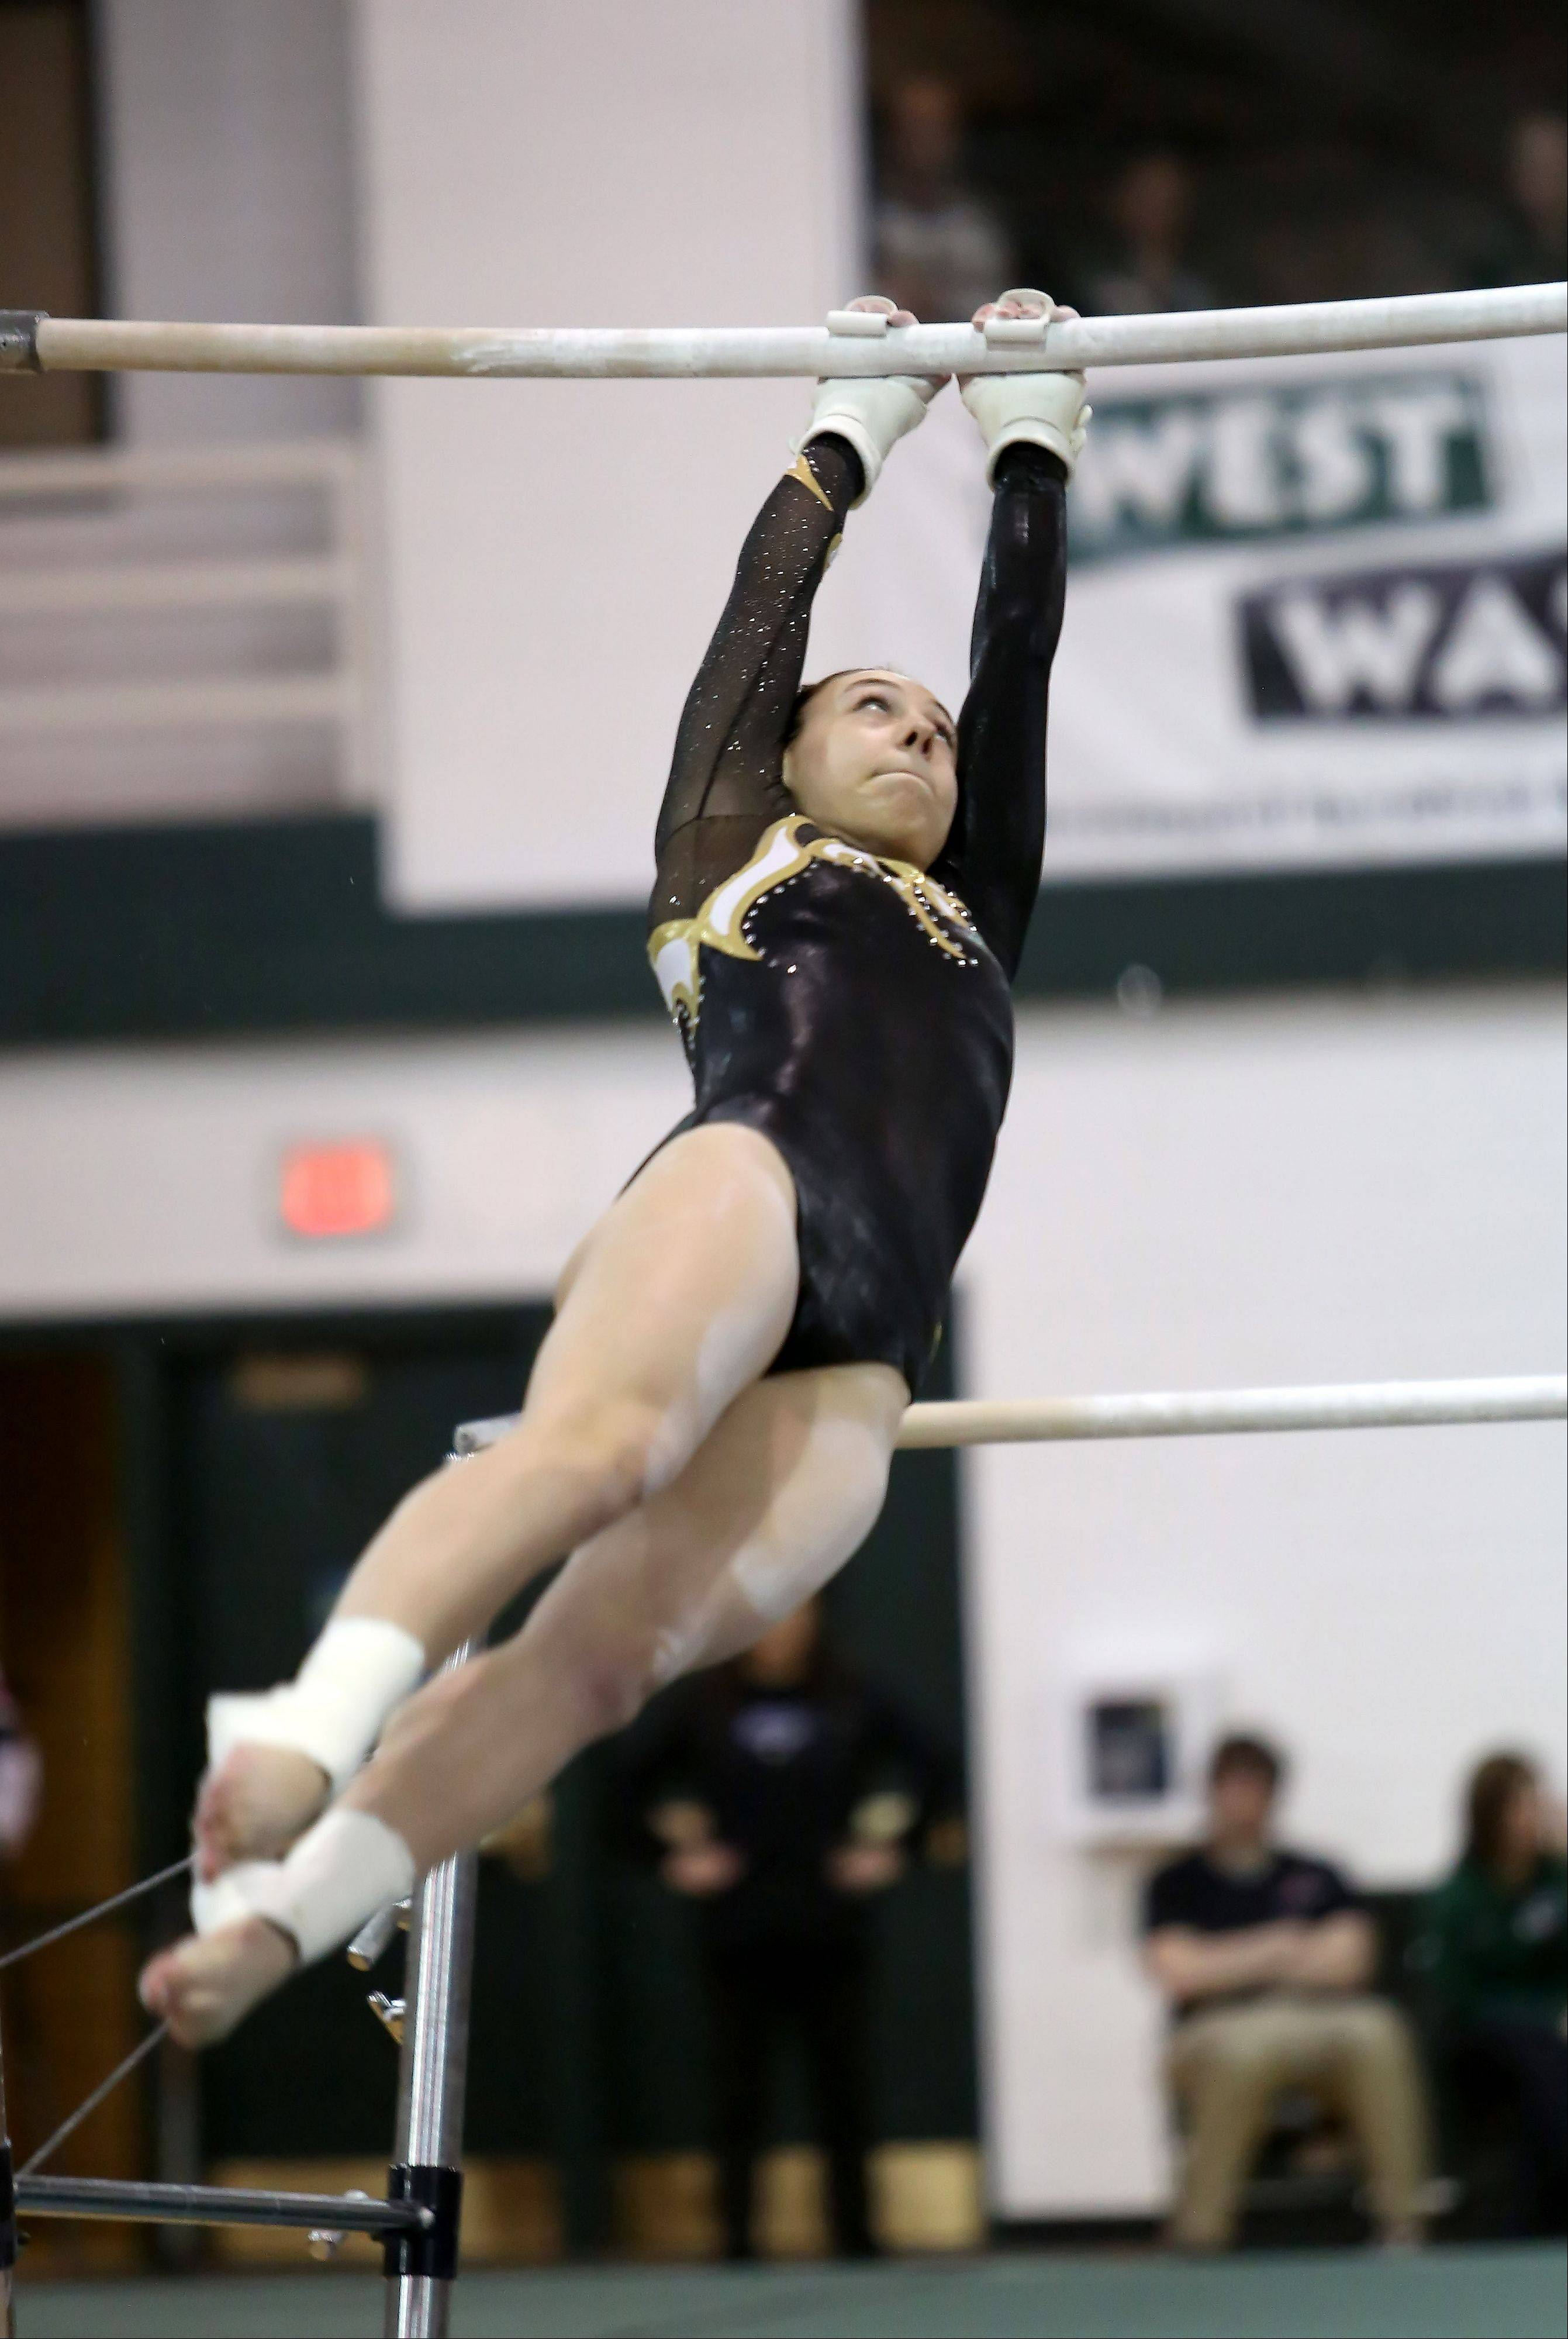 Mariah Matesi of Glenbard North performs on the uneven parallel bars during sectional gymnastics at Glenbard West on Tuesday in Glen Ellyn.